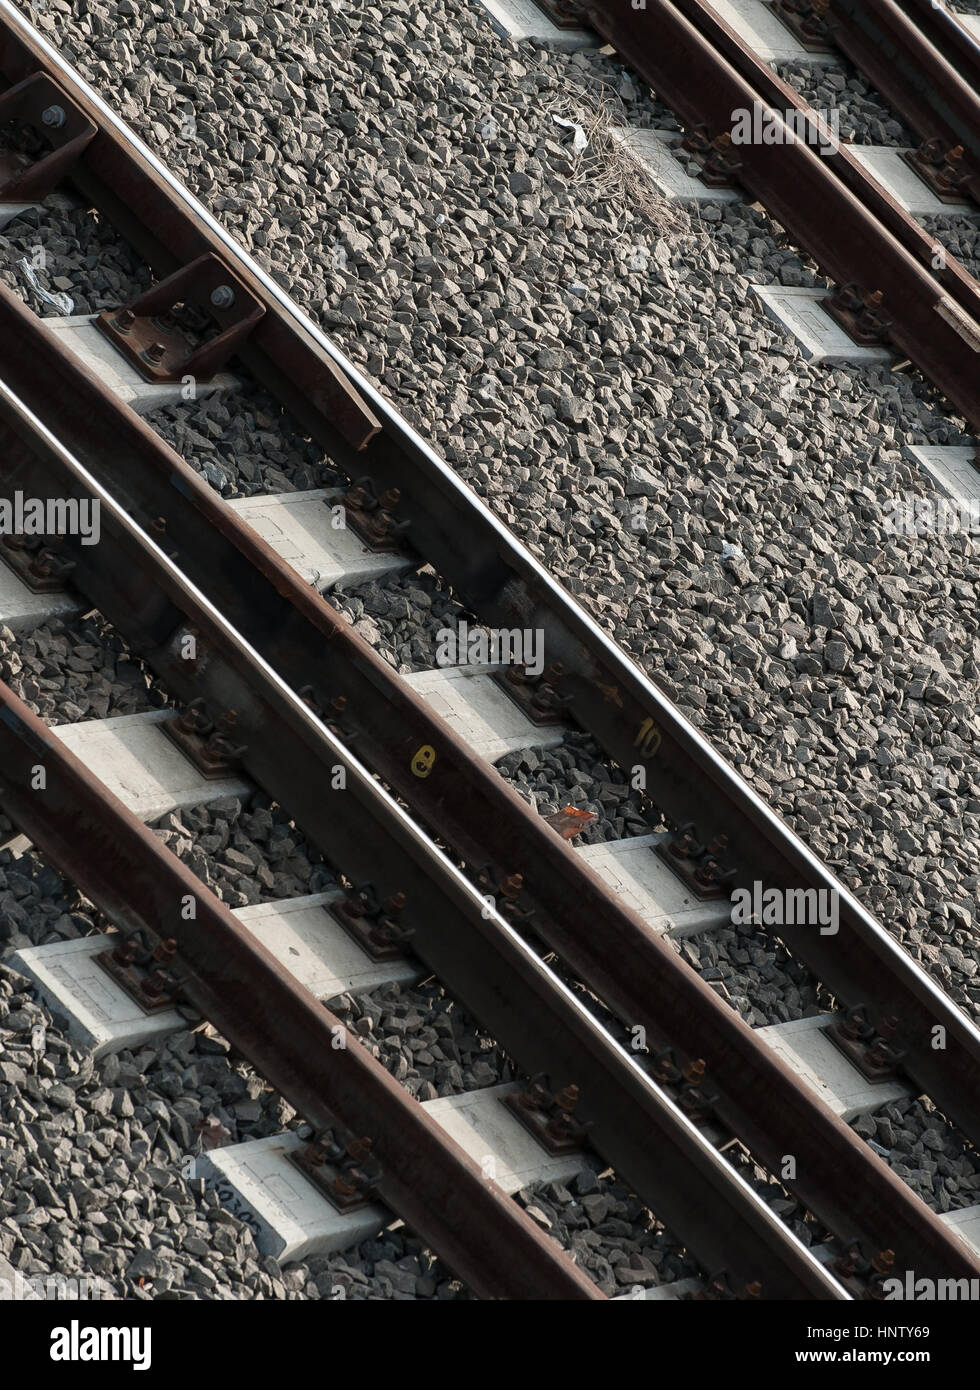 Unique and abstract view of railroad tracks - Stock Image